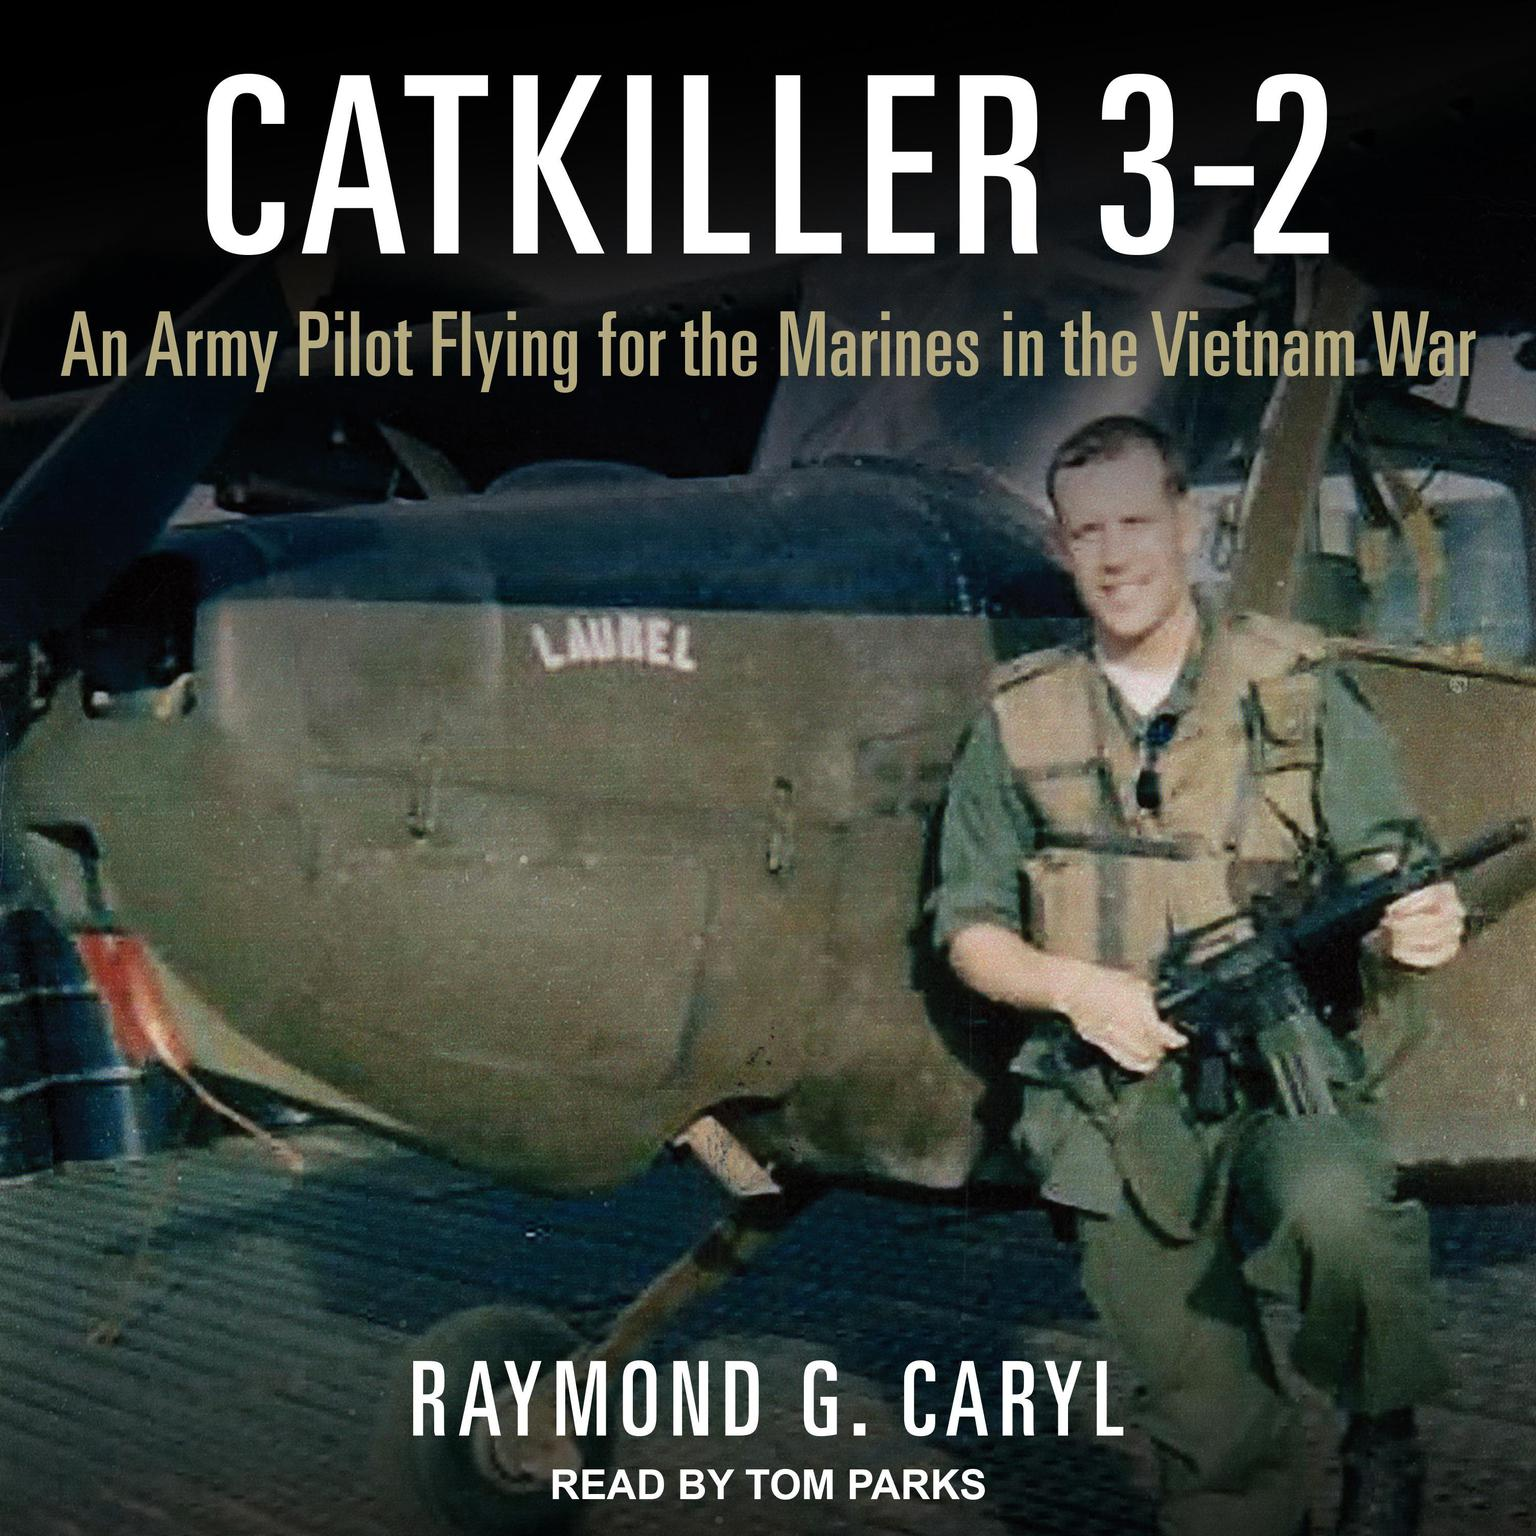 Catkiller 3-2: An Army Pilot Flying for the Marines in the Vietnam War Audiobook, by Raymond G. Caryl